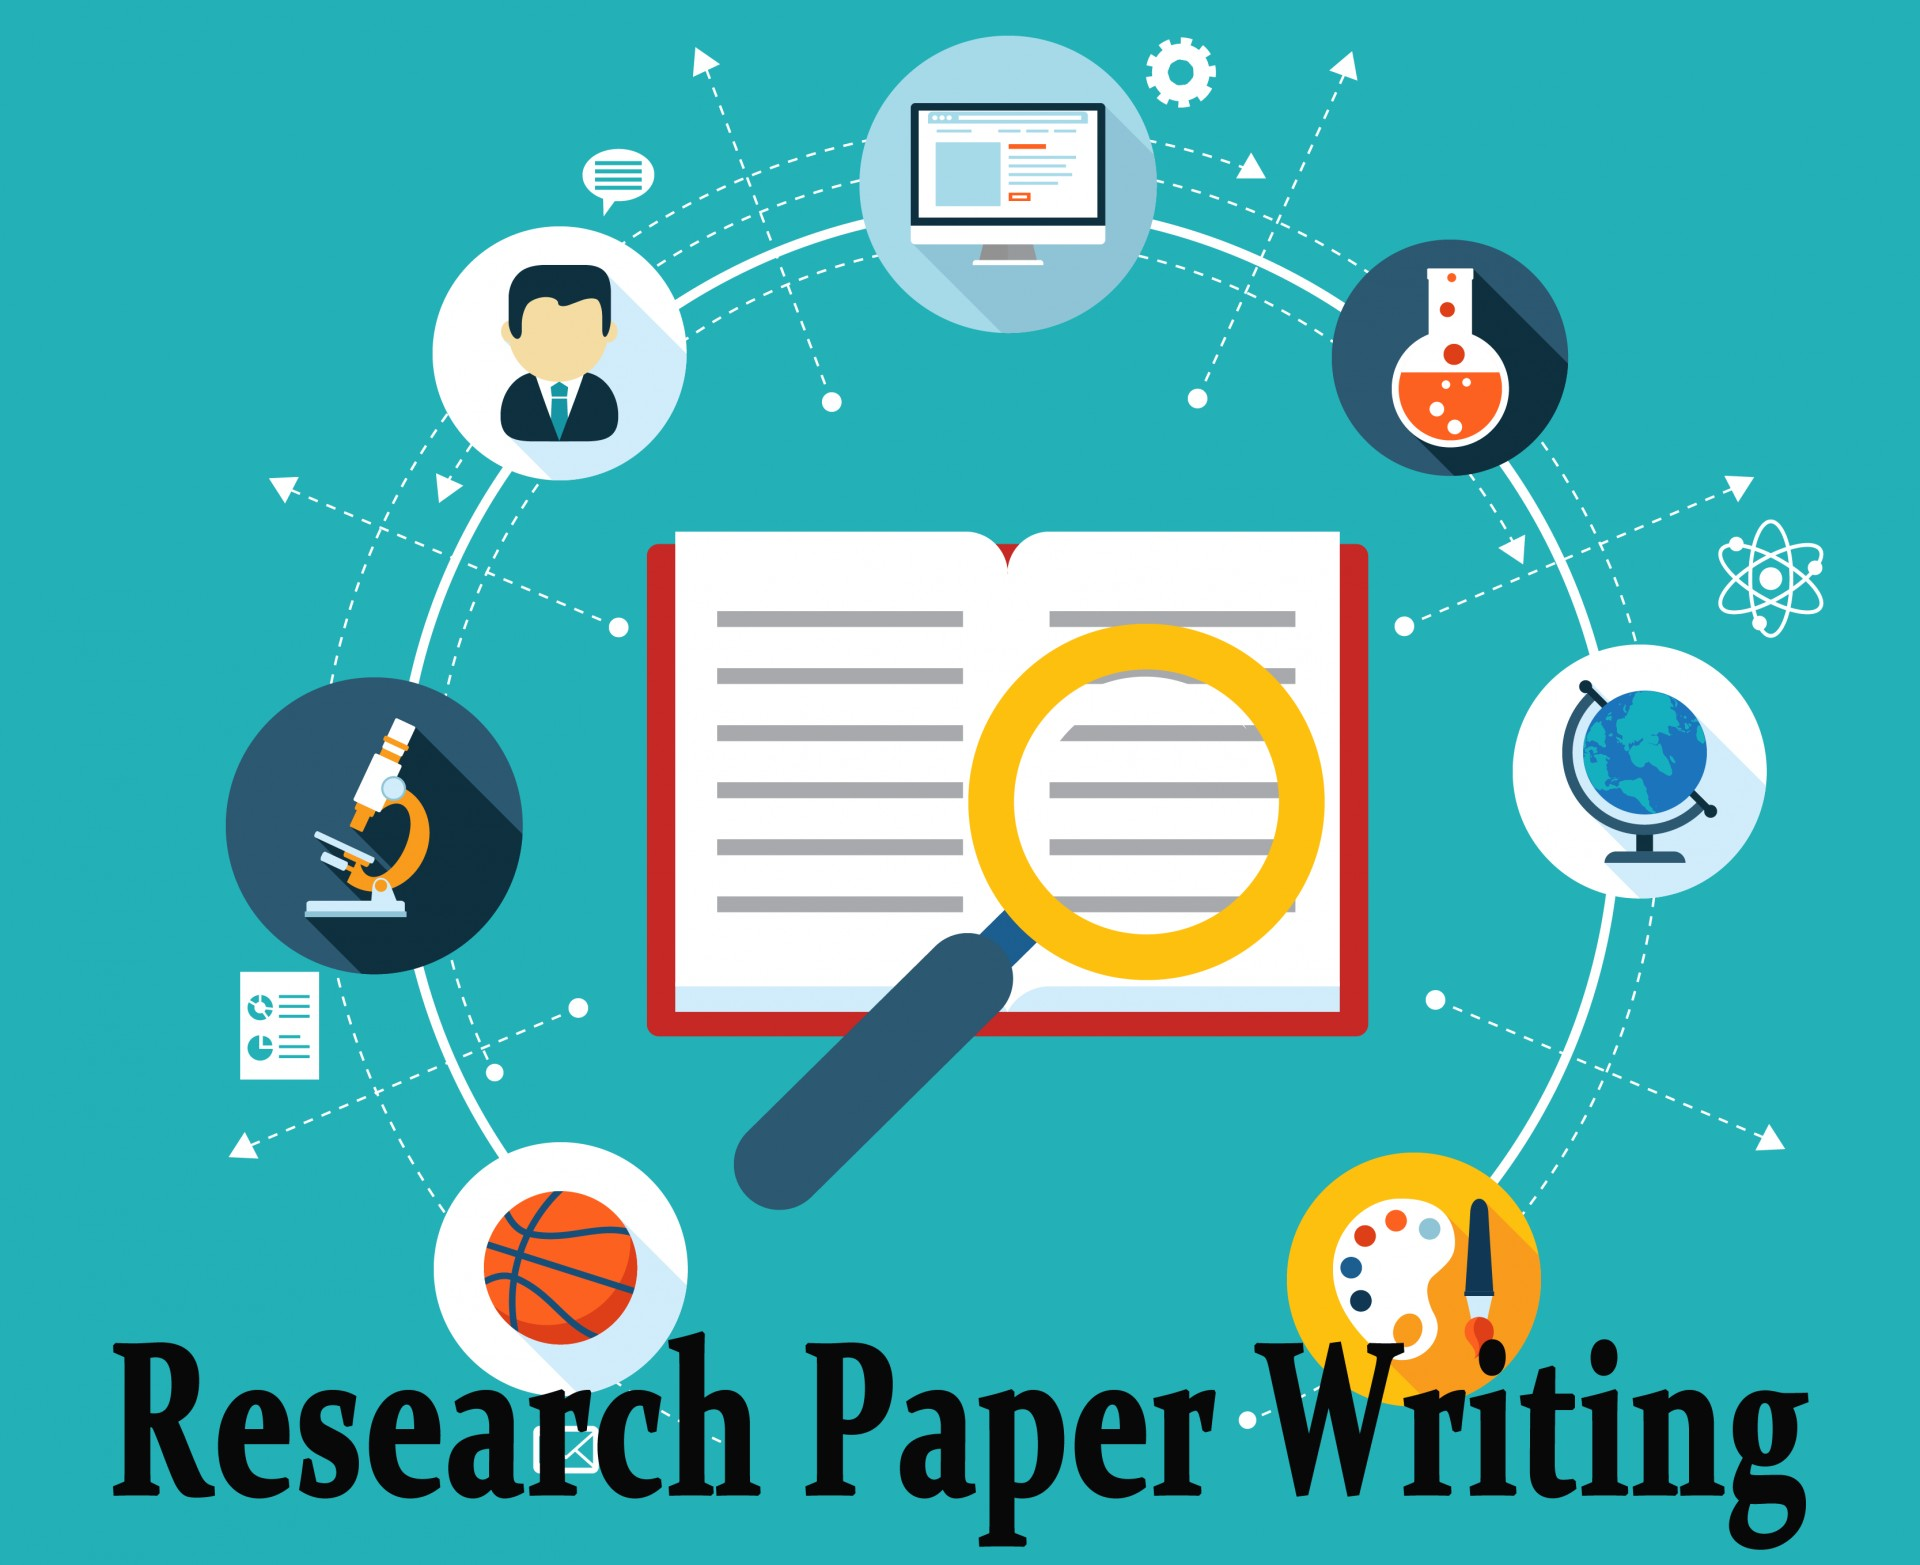 002 503 Effective Research Writing Written Wonderful Paper Buy Pre Papers For Sale Free 1920